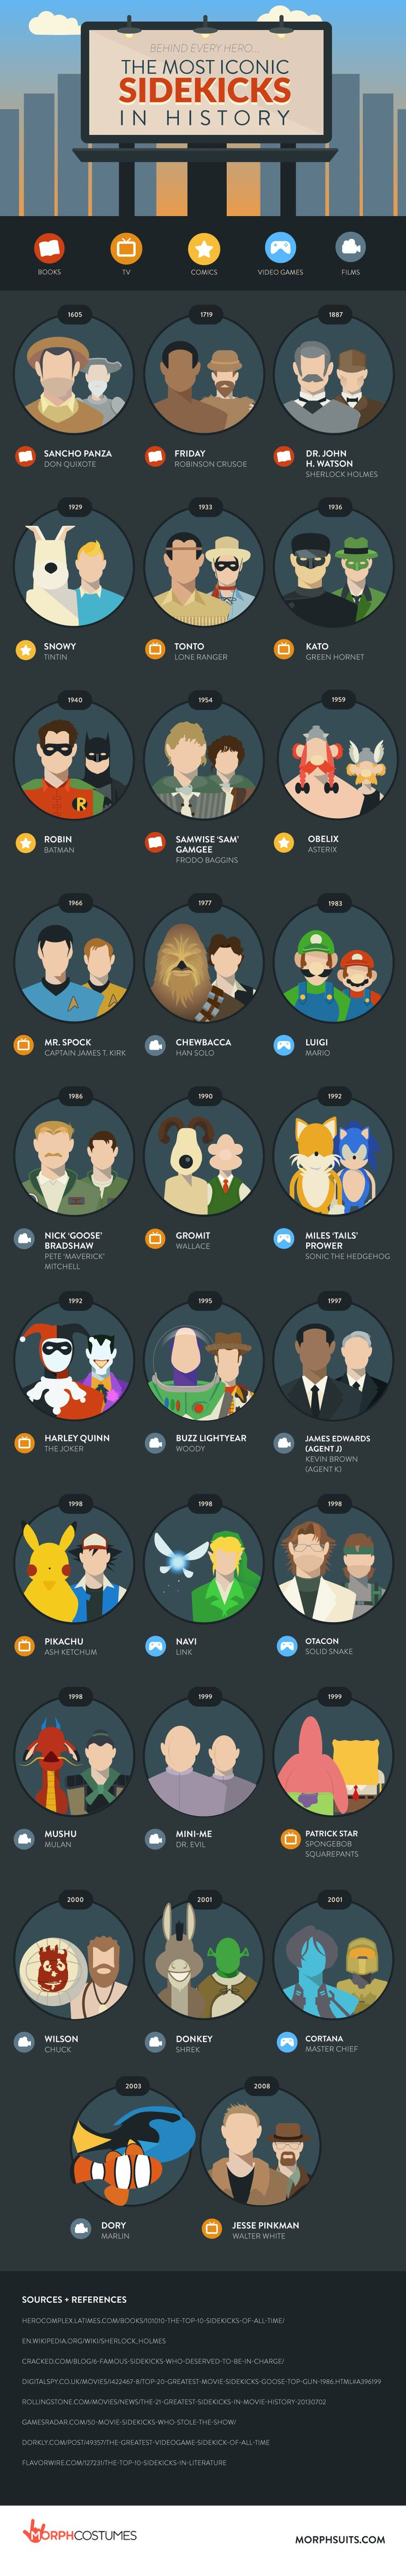 the-most-iconic-sidekicks-in-history-infographic